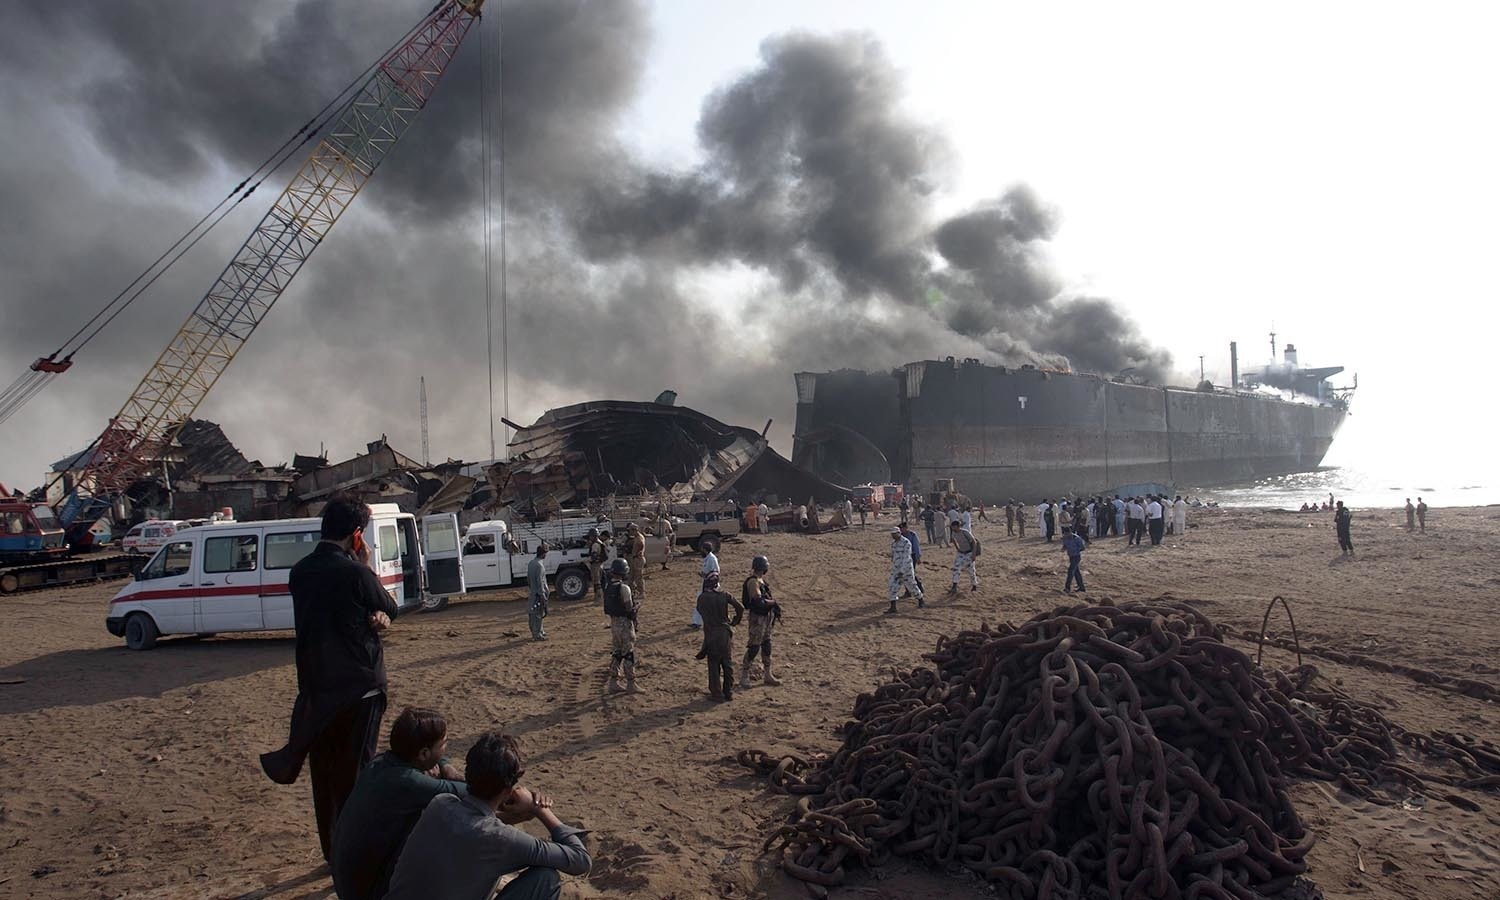 People look at the ship on fire following an explosion in the coastal town of Gadani. ─AP